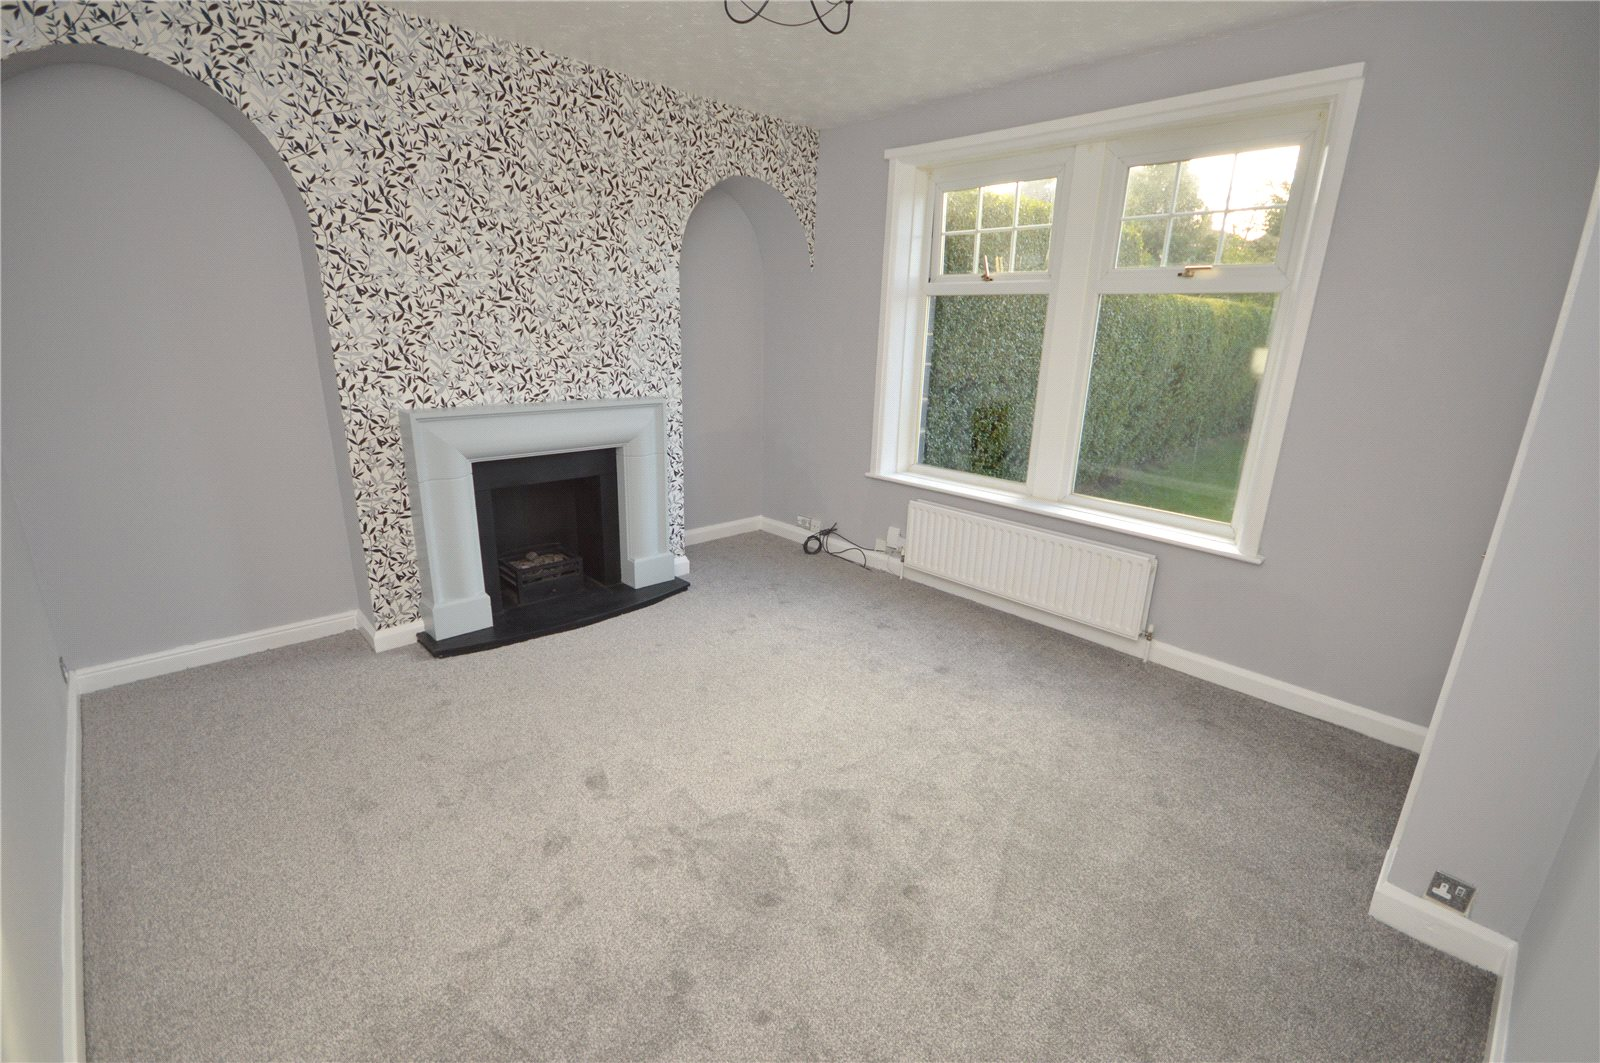 Property for sale in Yeadon, interior reception room with fireplace